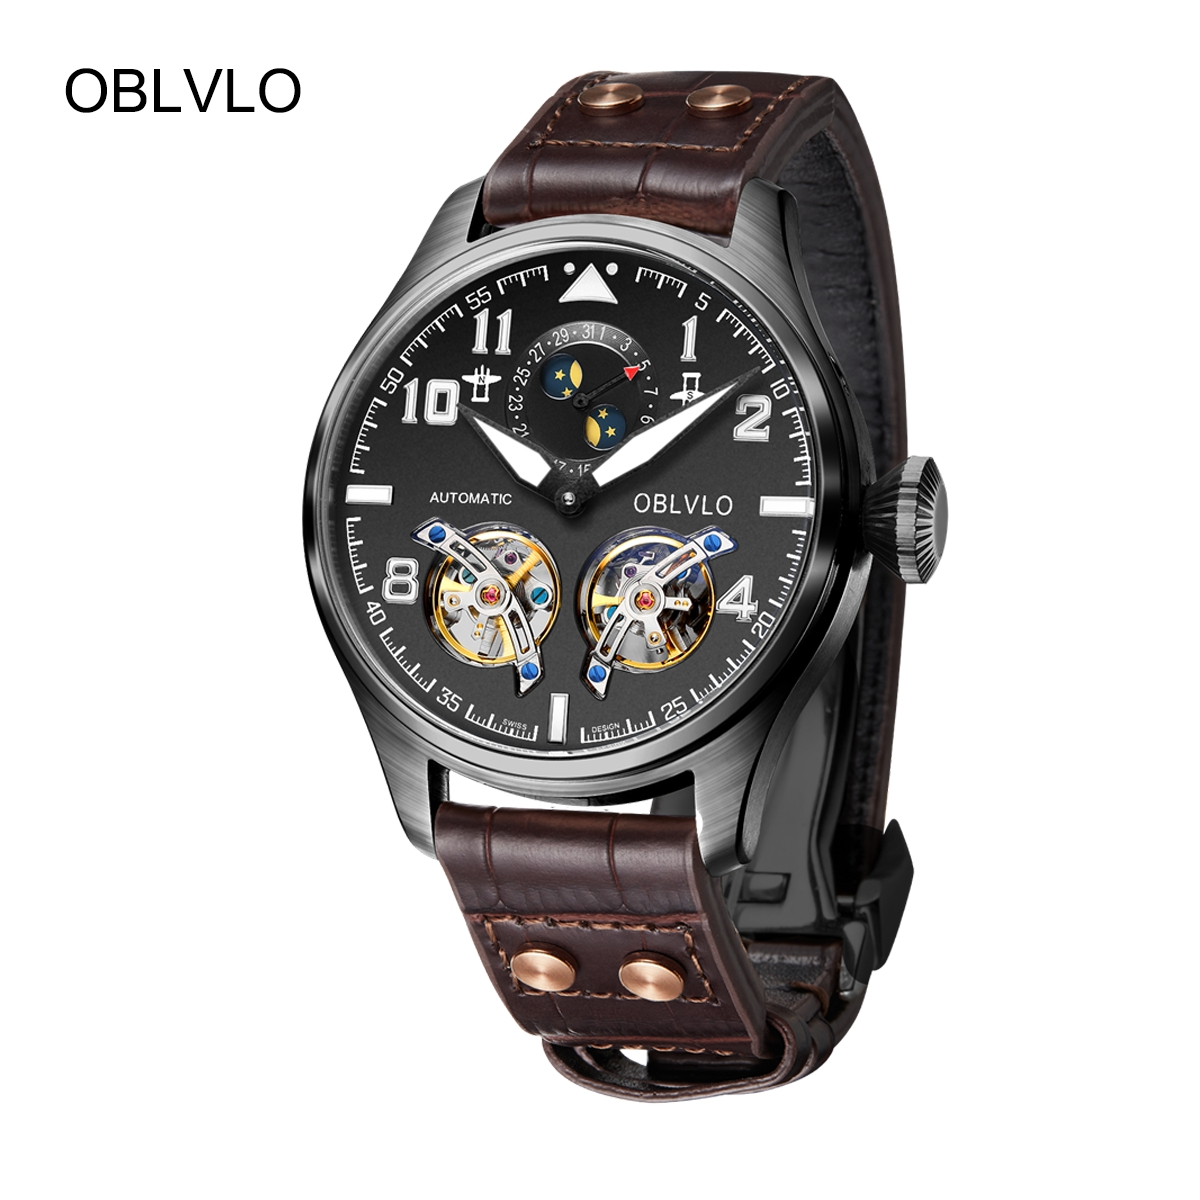 OBLVLO Mens Watches Black PVD Automatic Watches Leather Strap Tourbillon Watch OBL8232-BBB